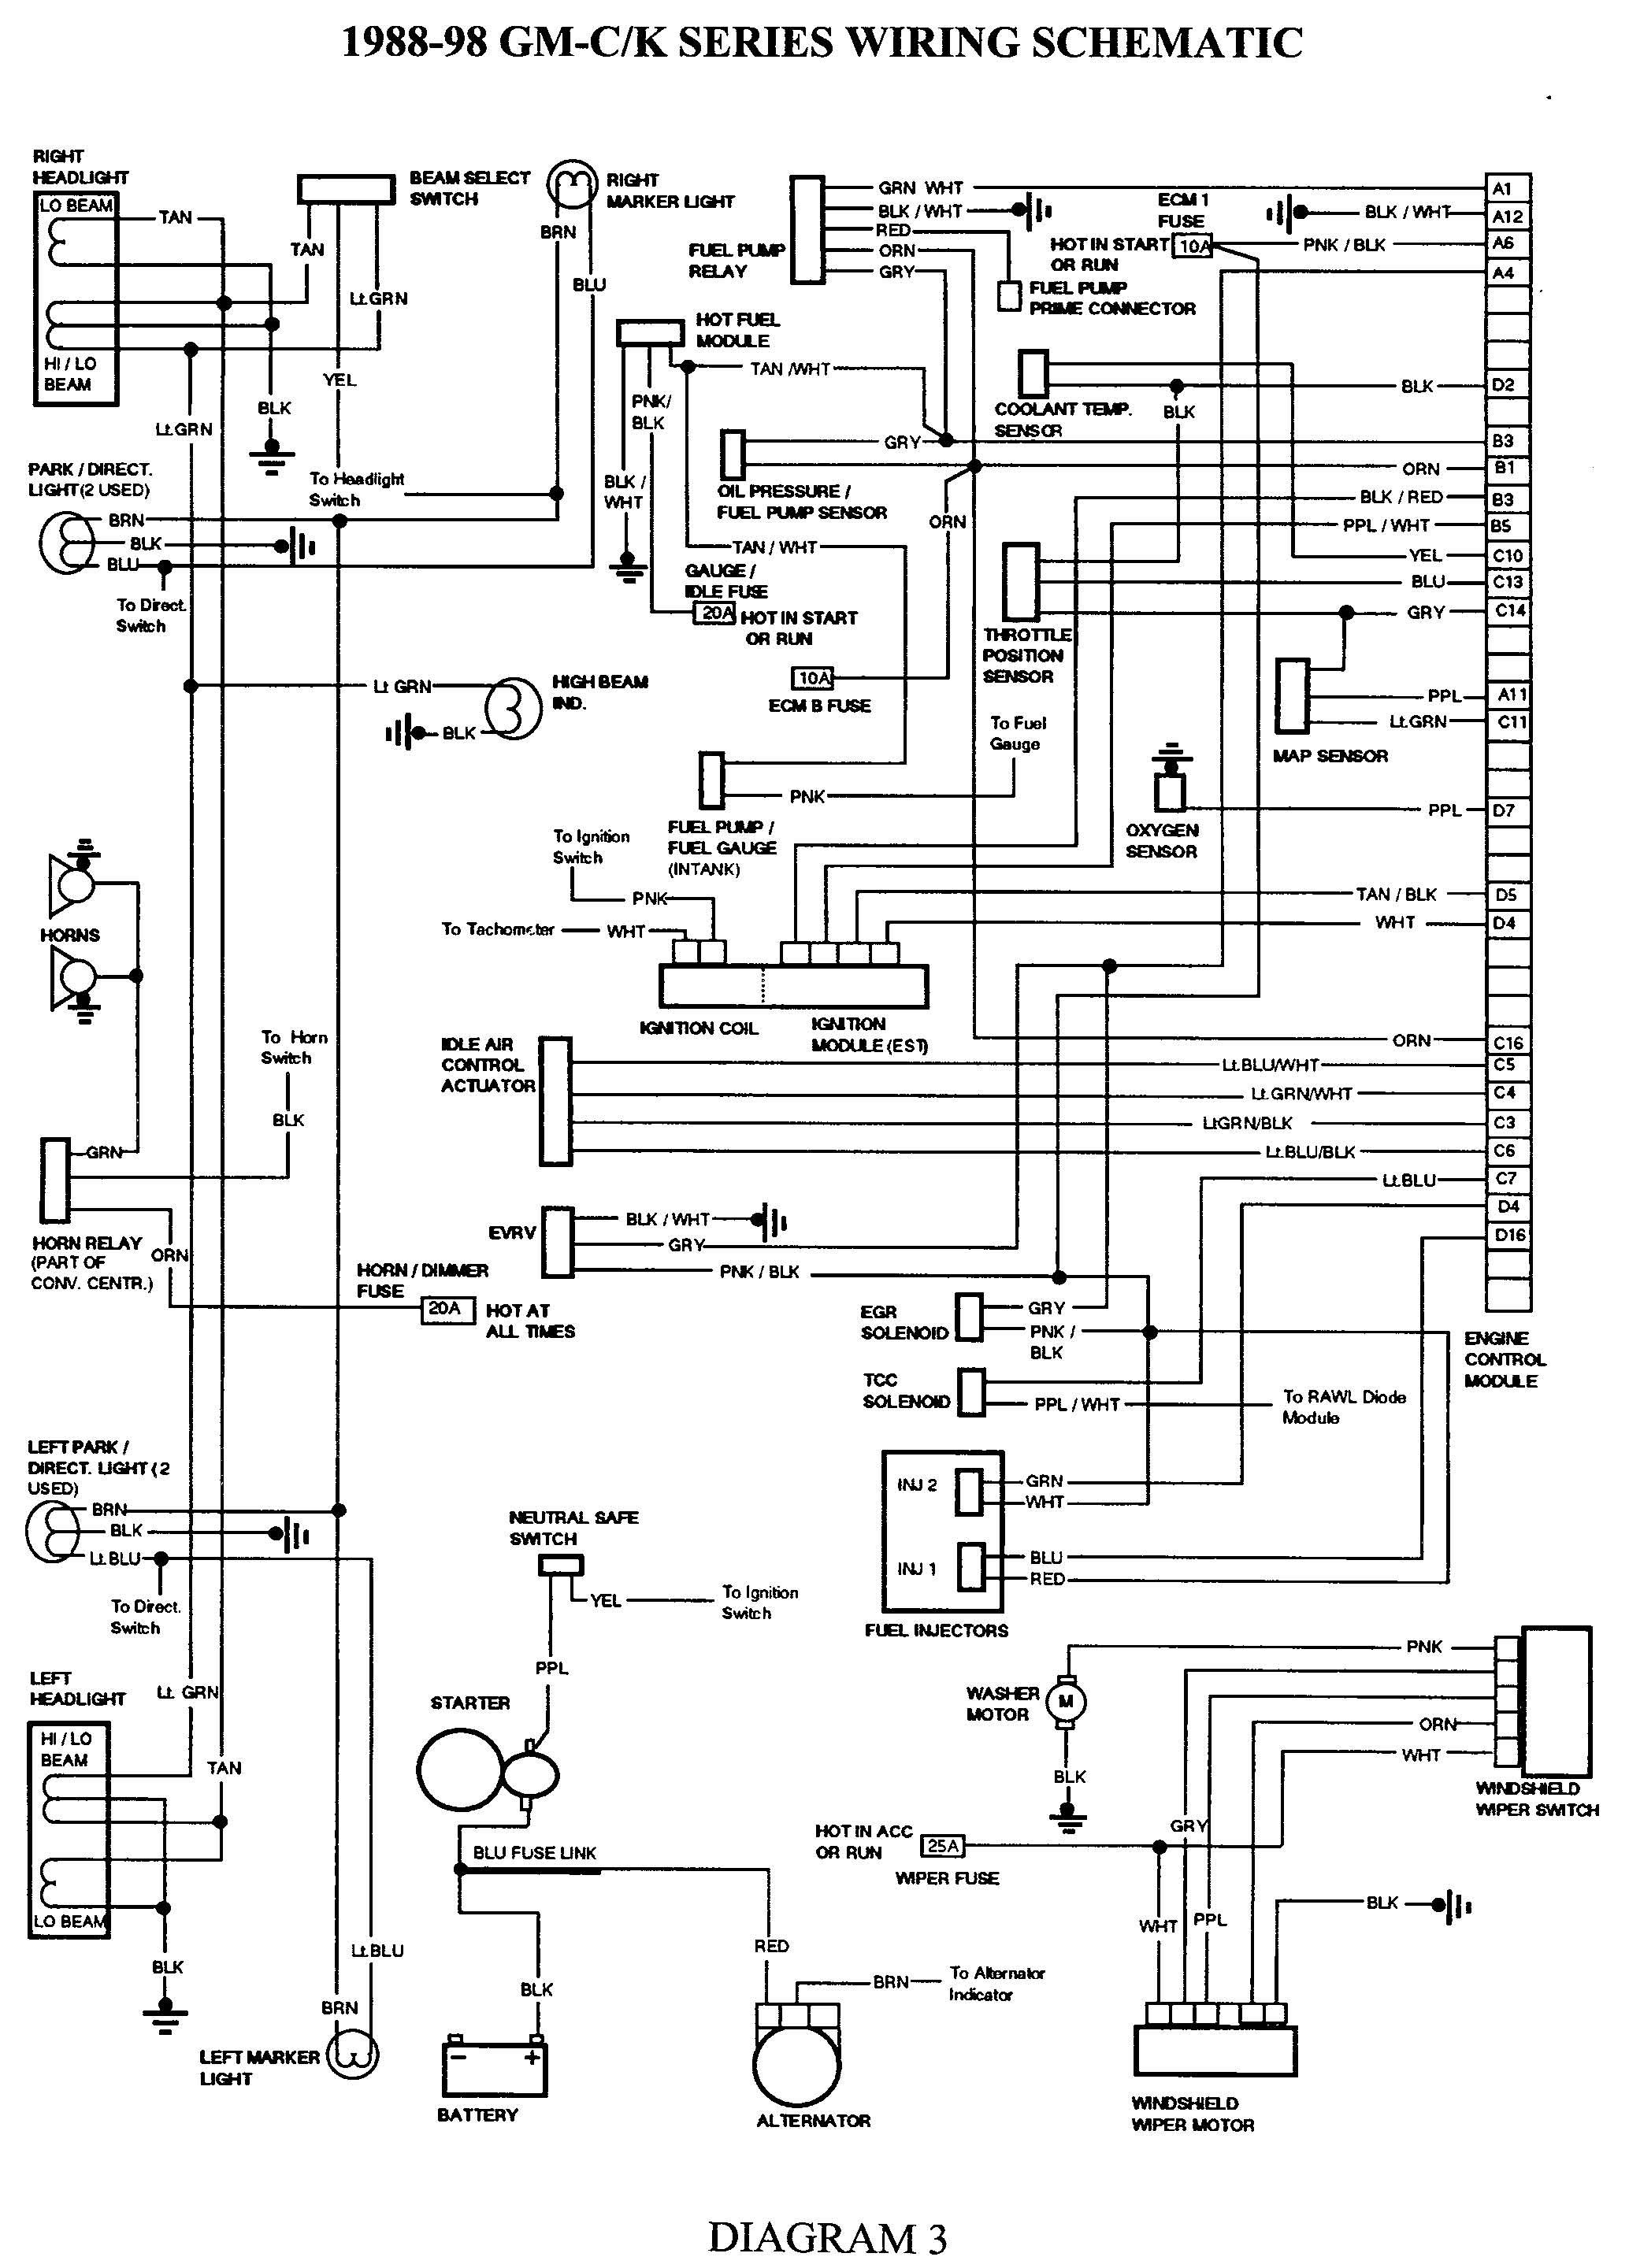 Wiring For 2000 Chevy Silverado 1500 Fuel System Diagram - Wiring - 1998 Chevy Silverado Fuel Pump Wiring Diagram